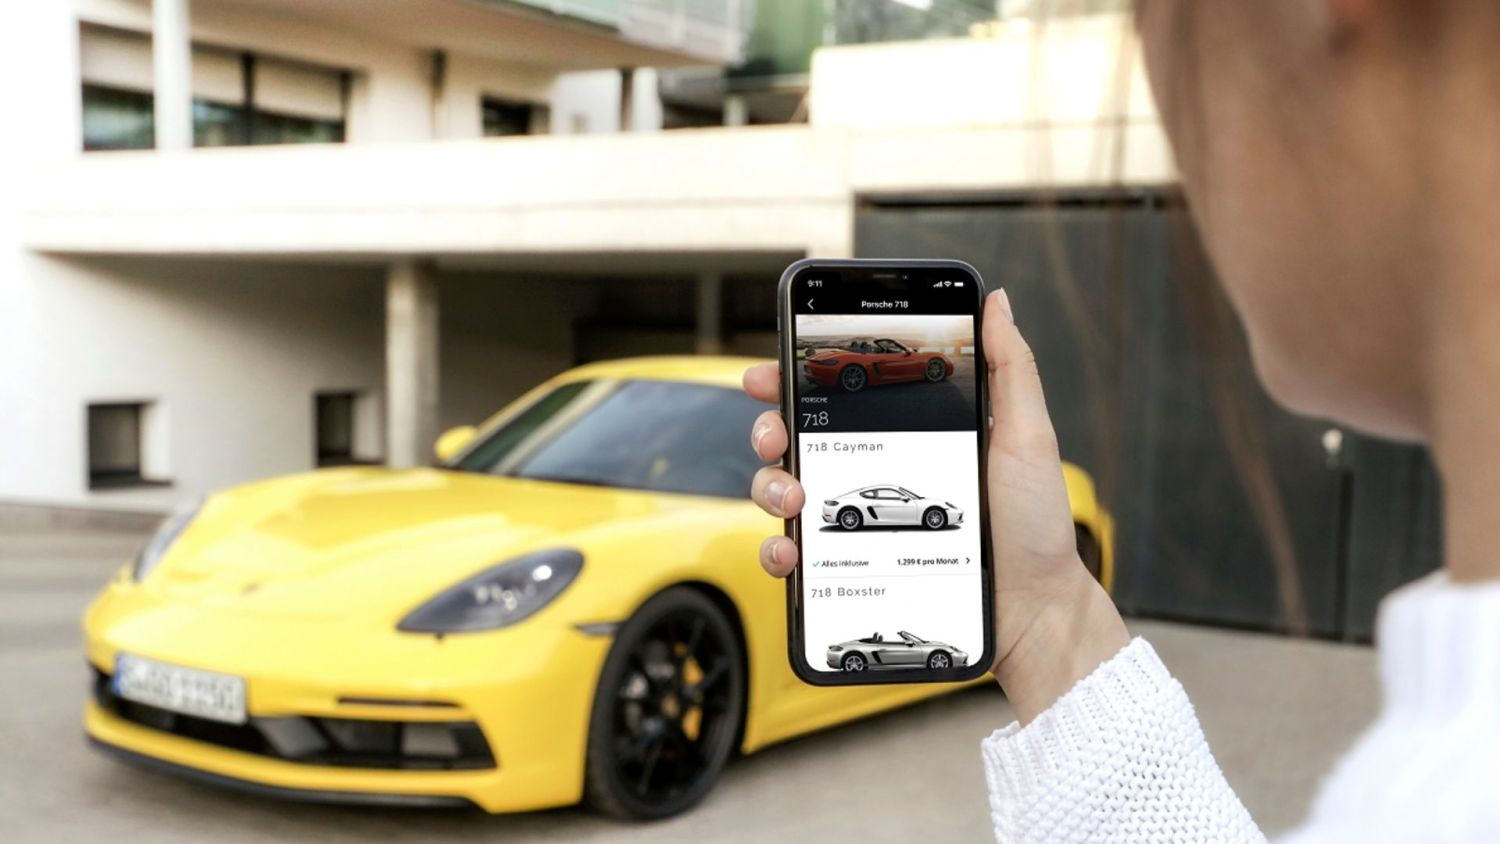 Buy a Porsche via an app